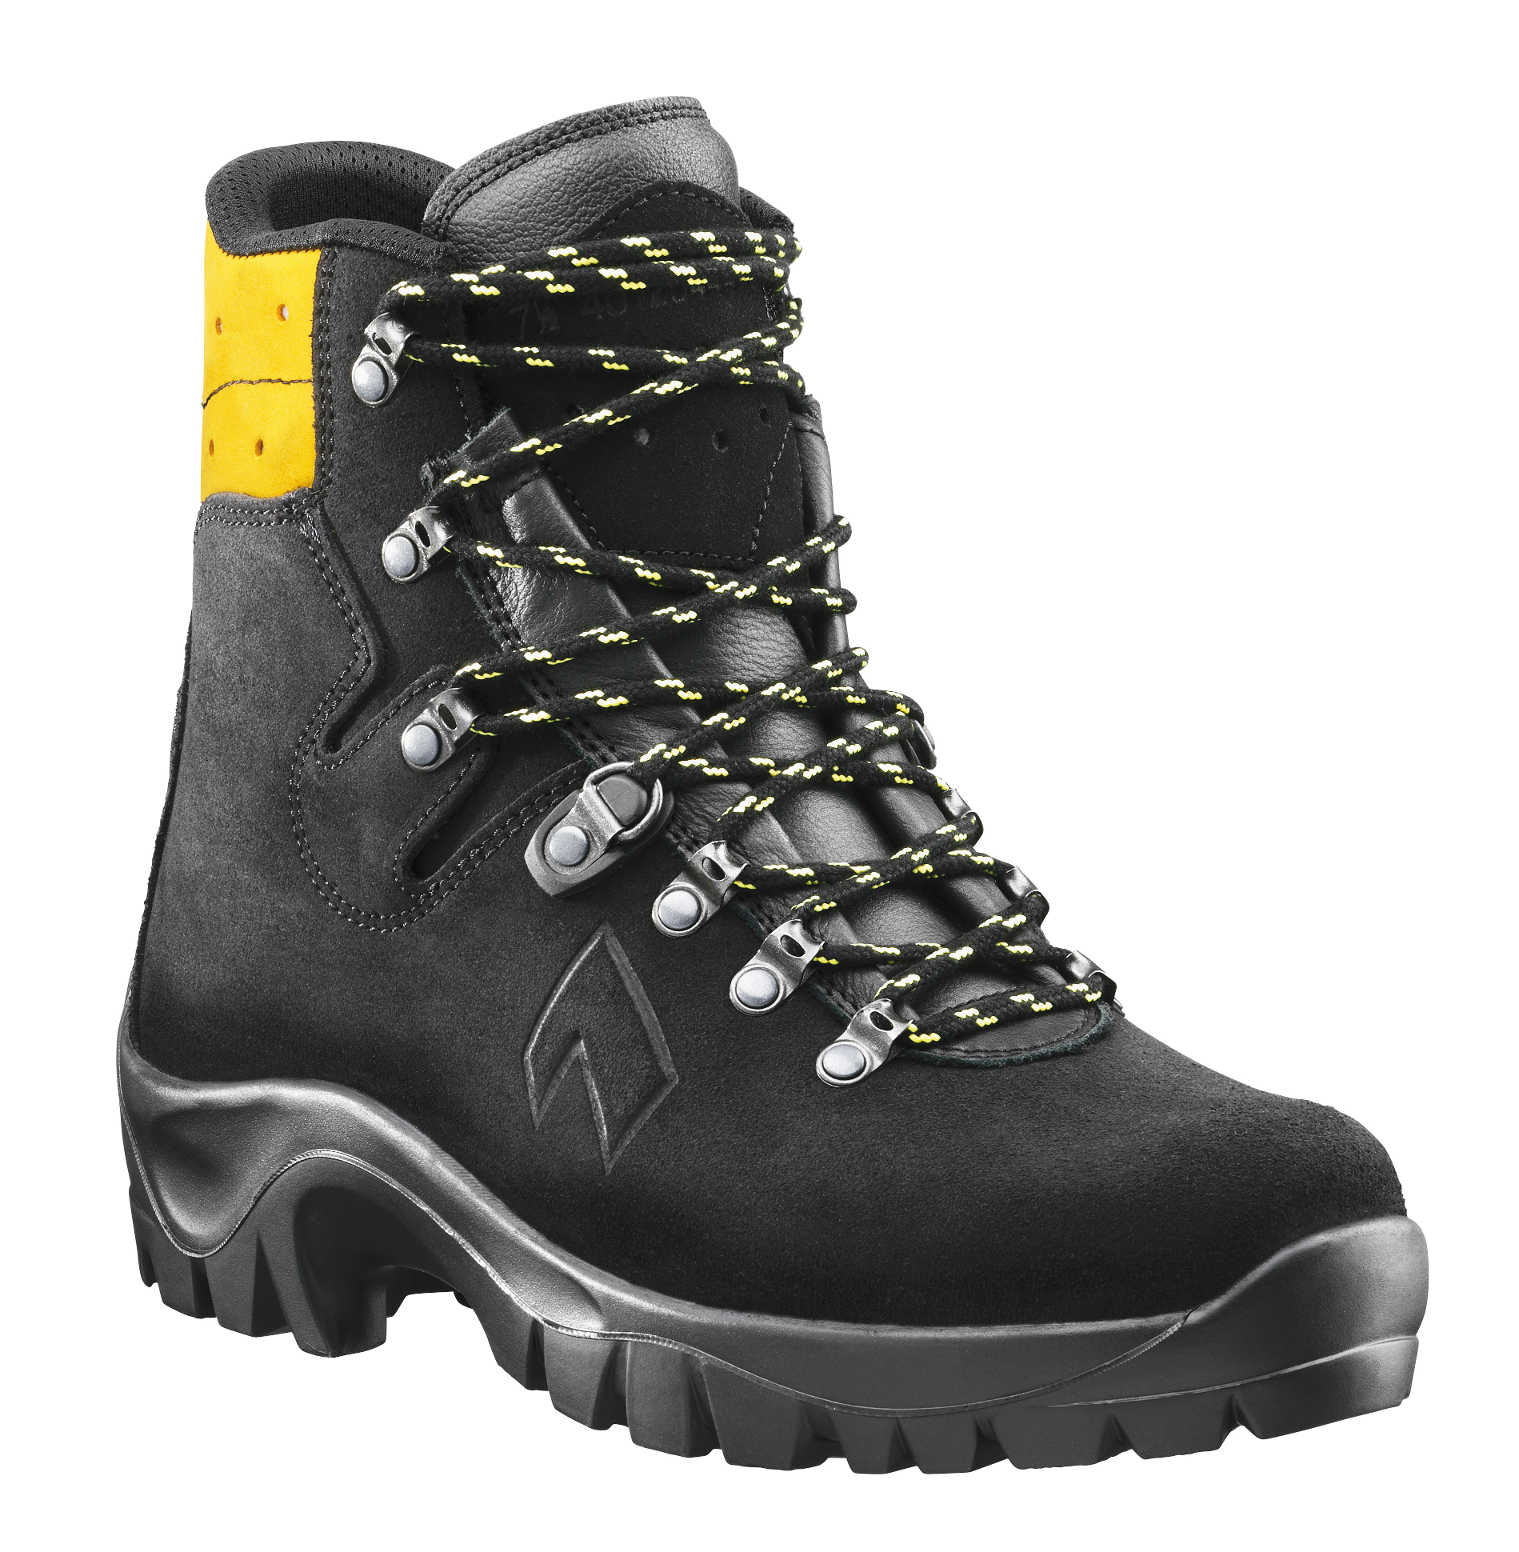 Missoula Wildland Hiking Boot